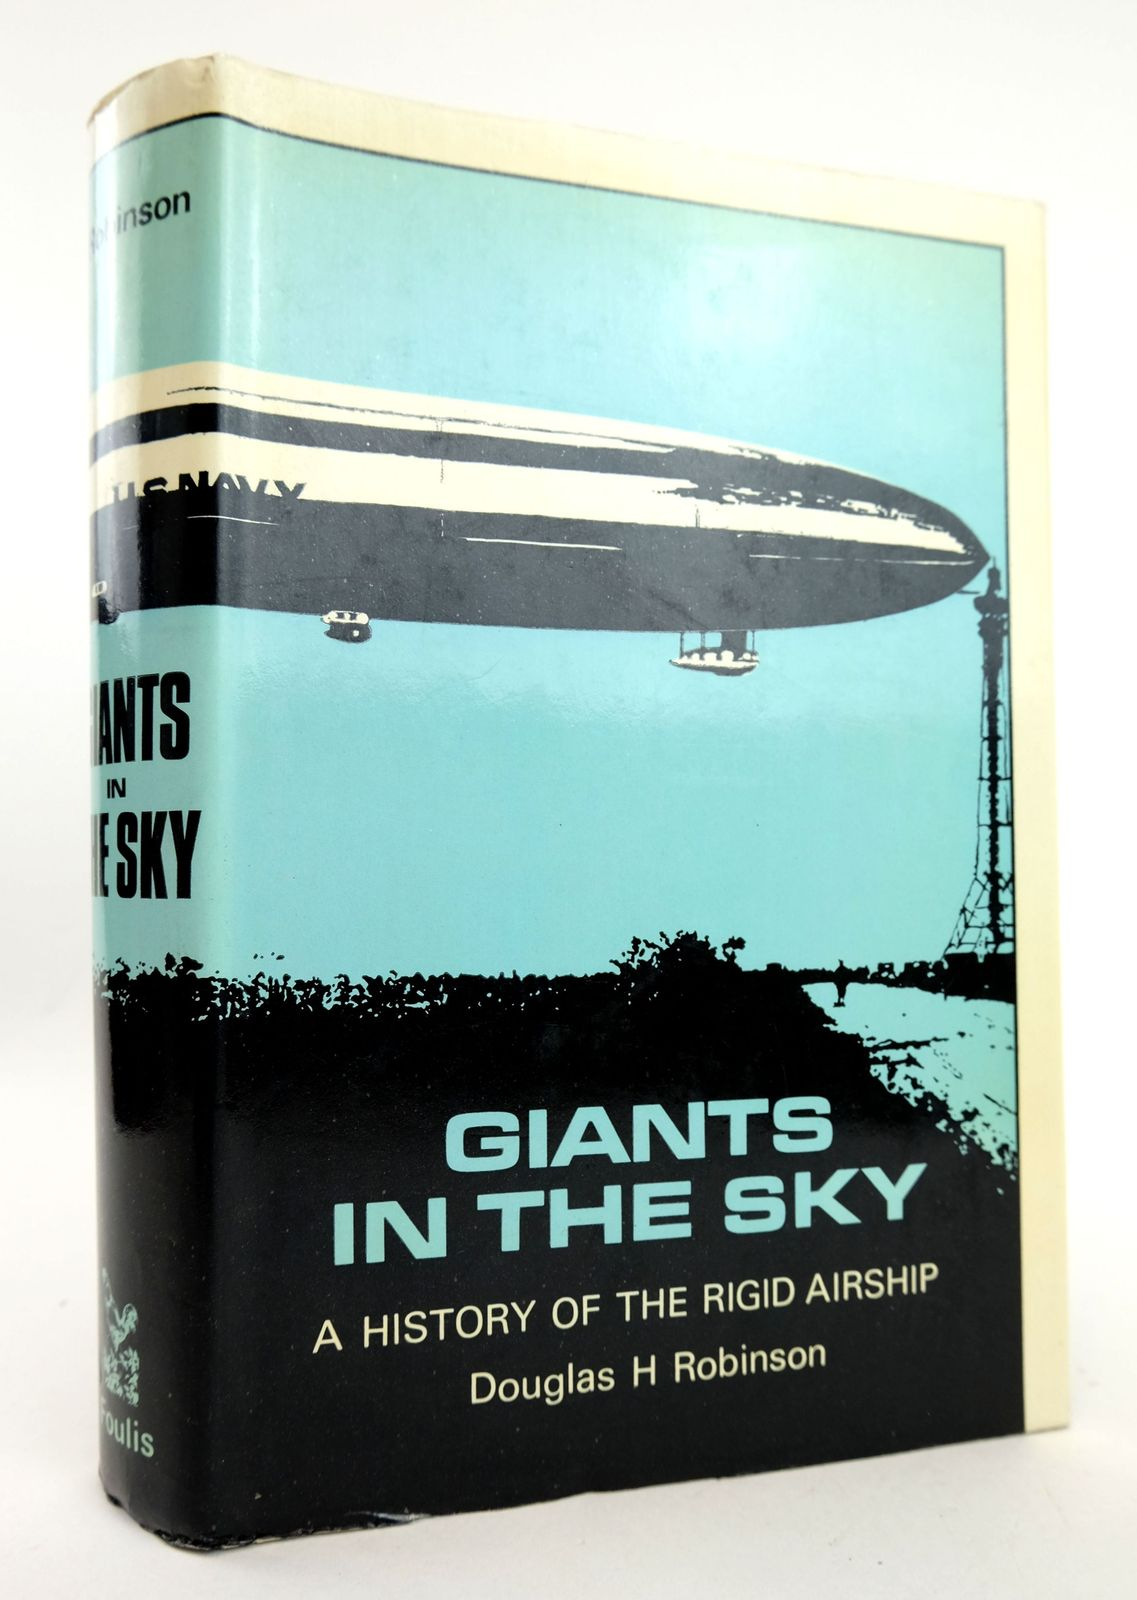 Photo of GIANTS IN THE SKY: A HISTORY OF THE RIGID AIRSHIP written by Robinson, Douglas H. published by G.T. Foulis & Co. Ltd. (STOCK CODE: 1819006)  for sale by Stella & Rose's Books